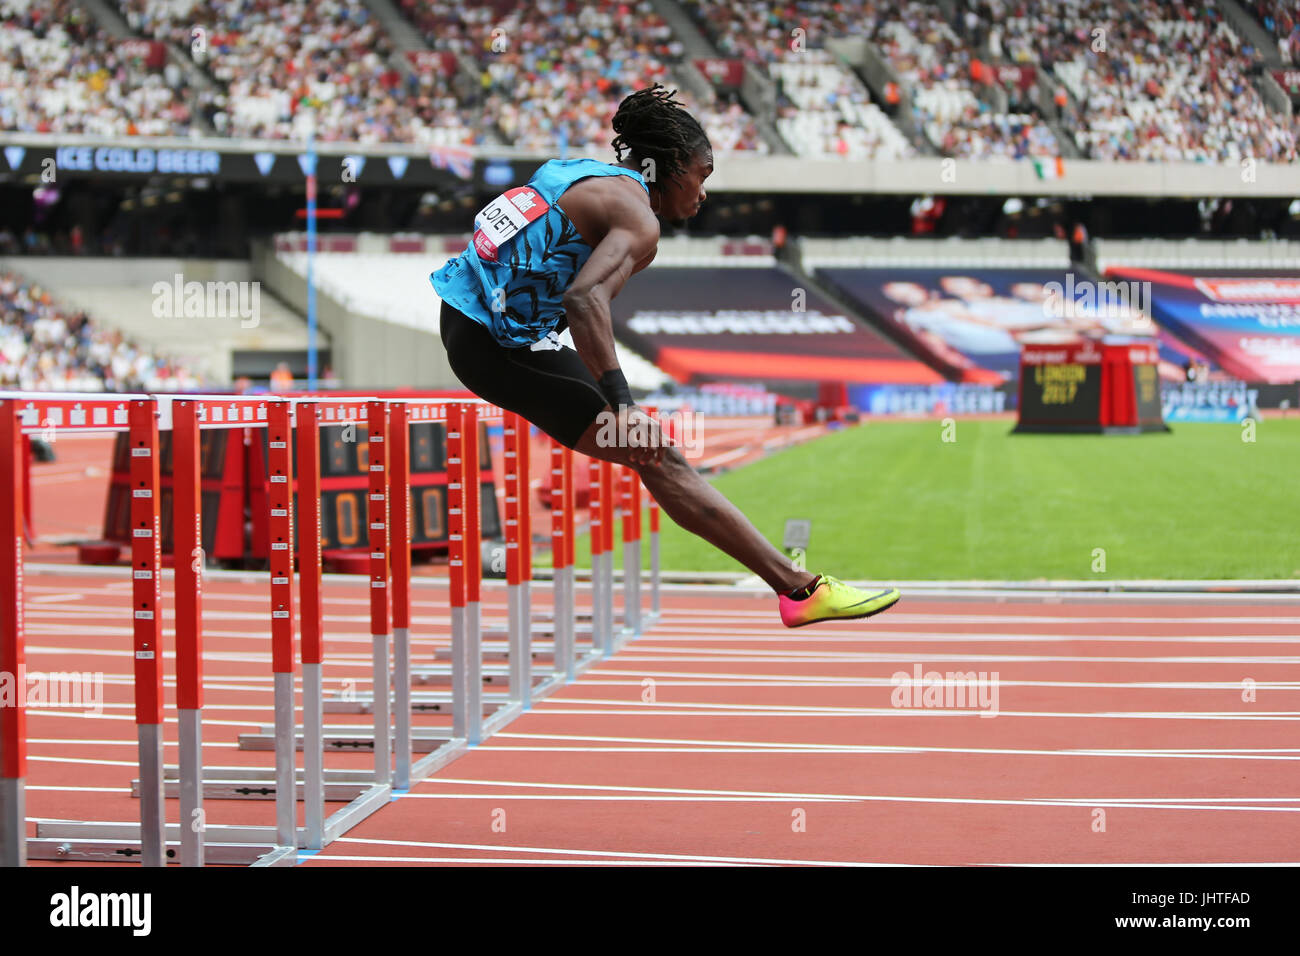 Eddie LOVETT Warming Up For The Mens 110m Hurdles Heat 1 At 2017 IAAF Diamond League Anniversary Games Queen Elizabeth Olympic Park London UK